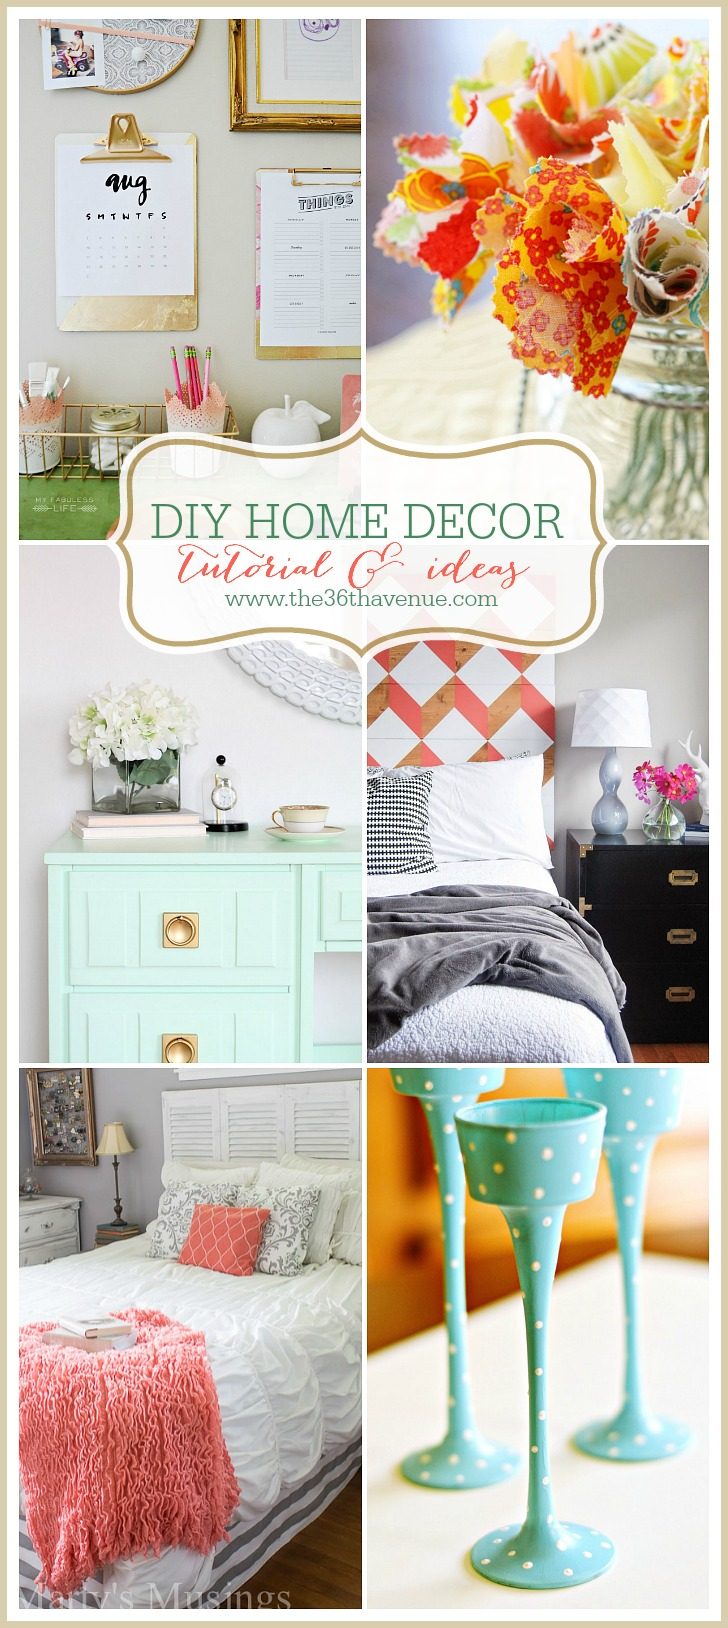 DIY Home Decor Tutorials at the36thavenue.com